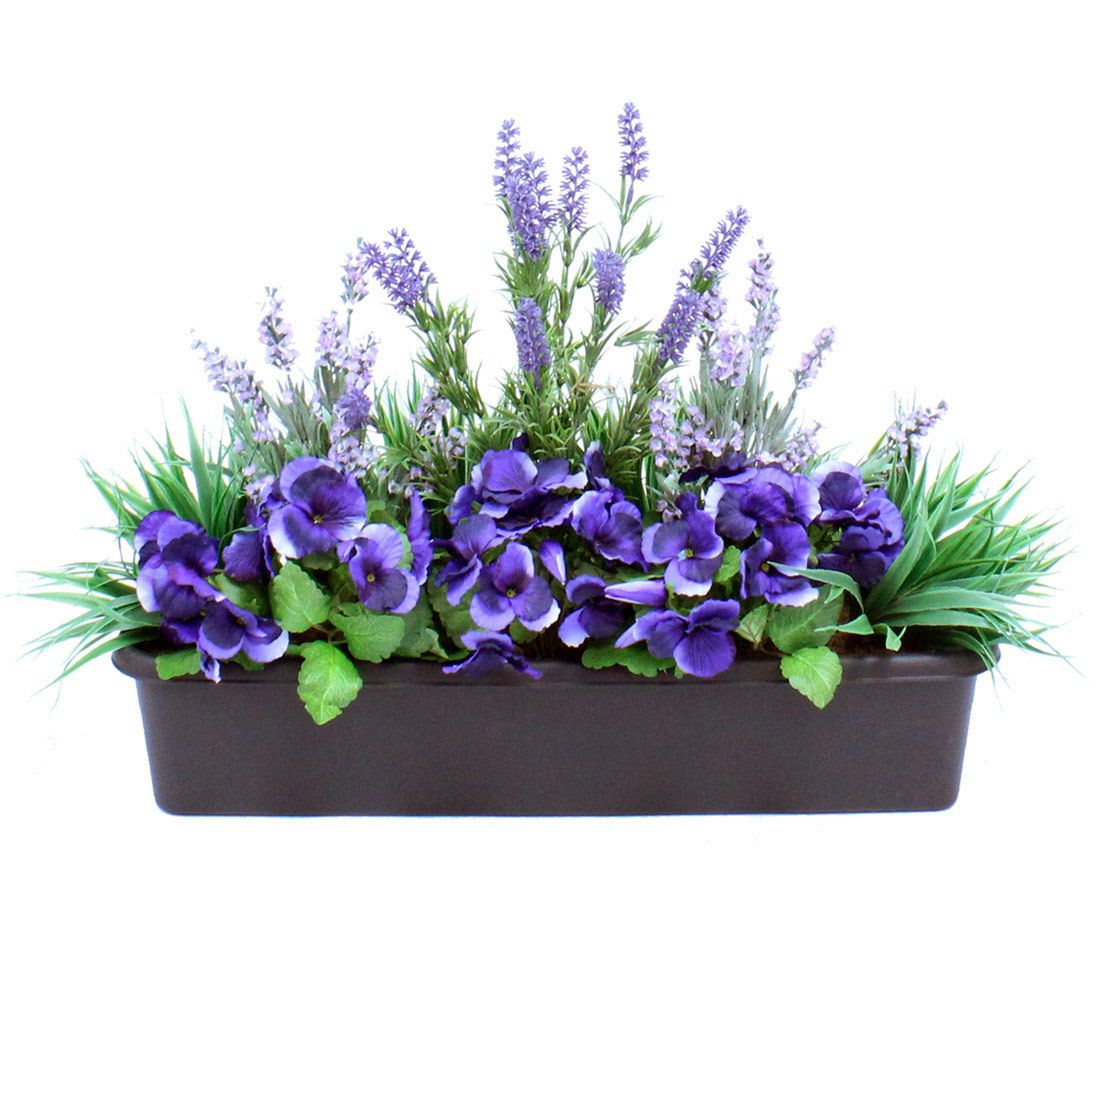 Artificial Pansy & Lavender Window Box | Fall Pots and ...